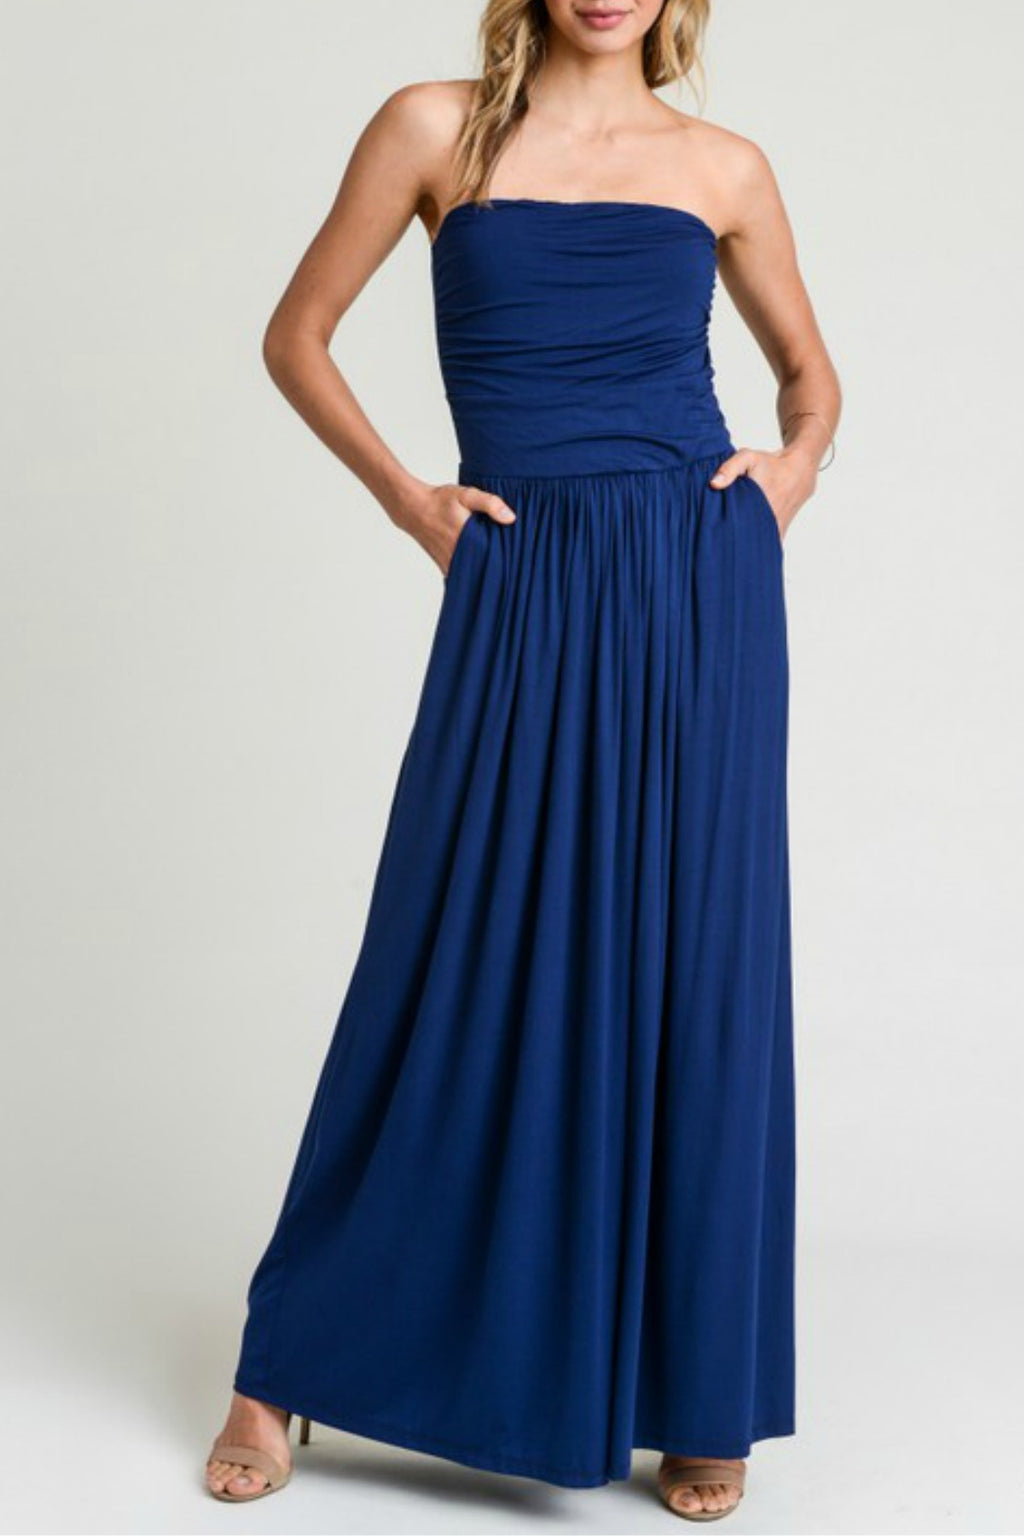 Ruched Strapless Maxi